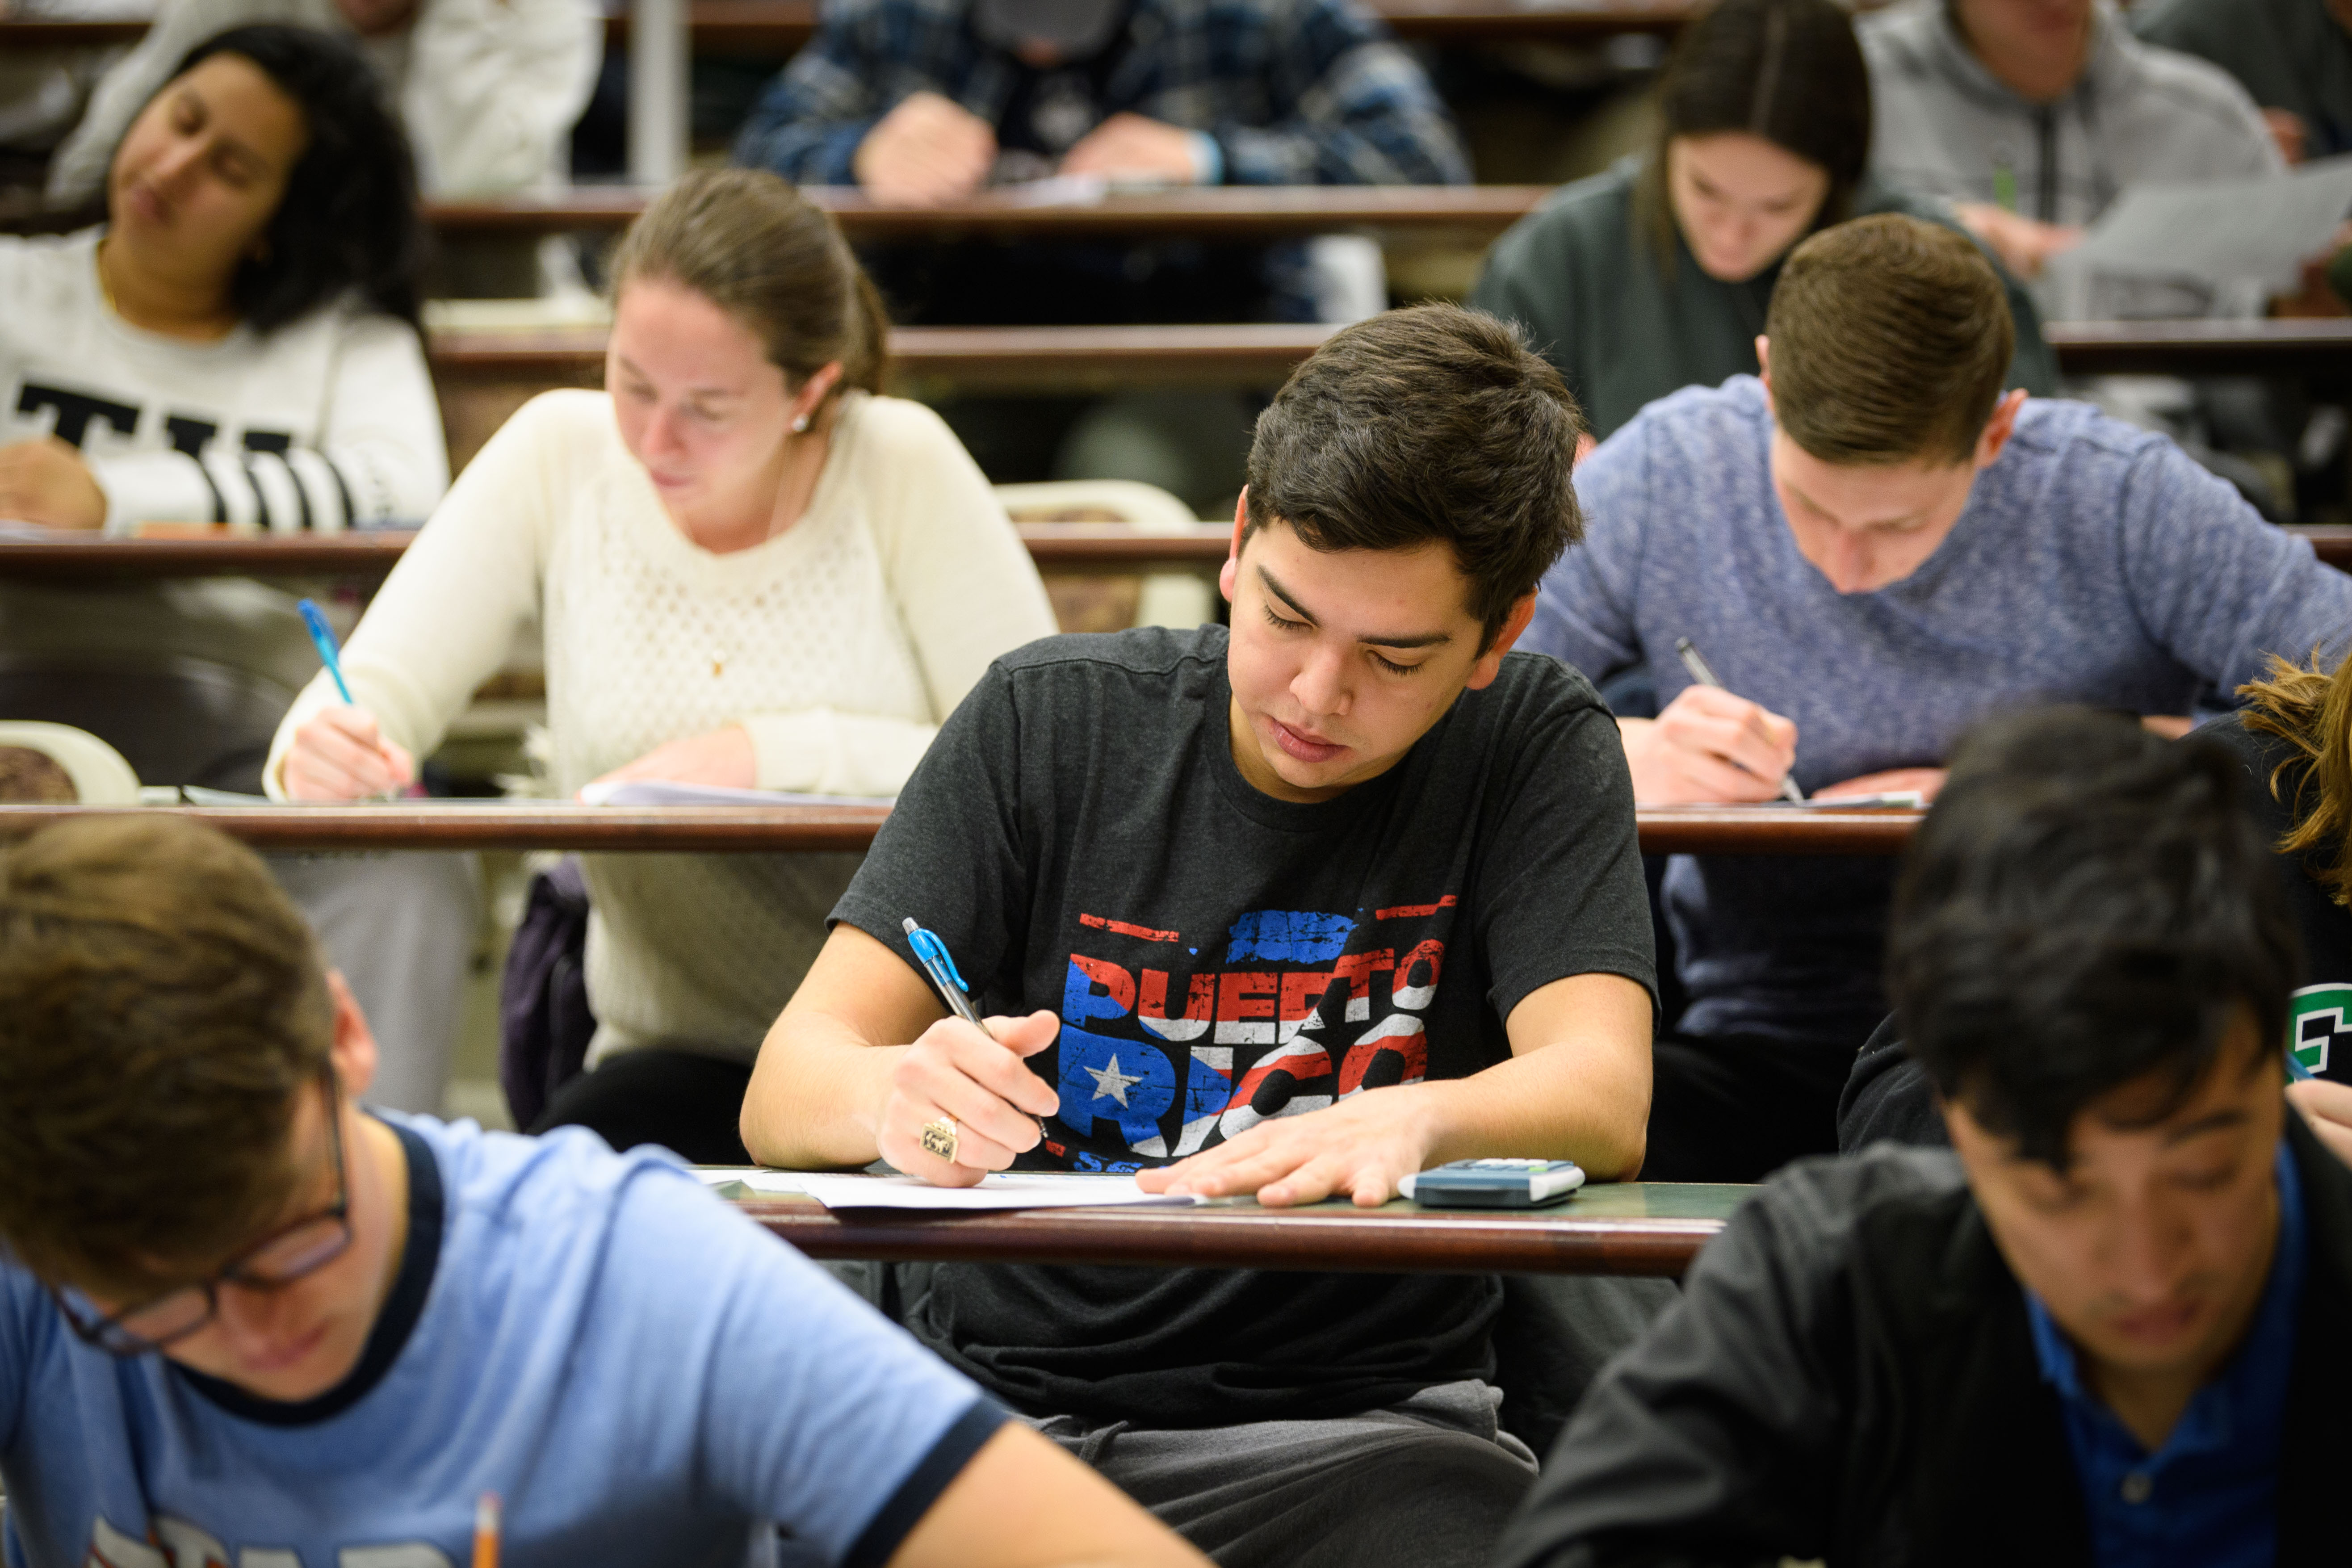 Sophomore Daniel Cintron takes a final exam at the Physics Building on Dec. 15, 2017. (Peter Morenus/UConn Photo)